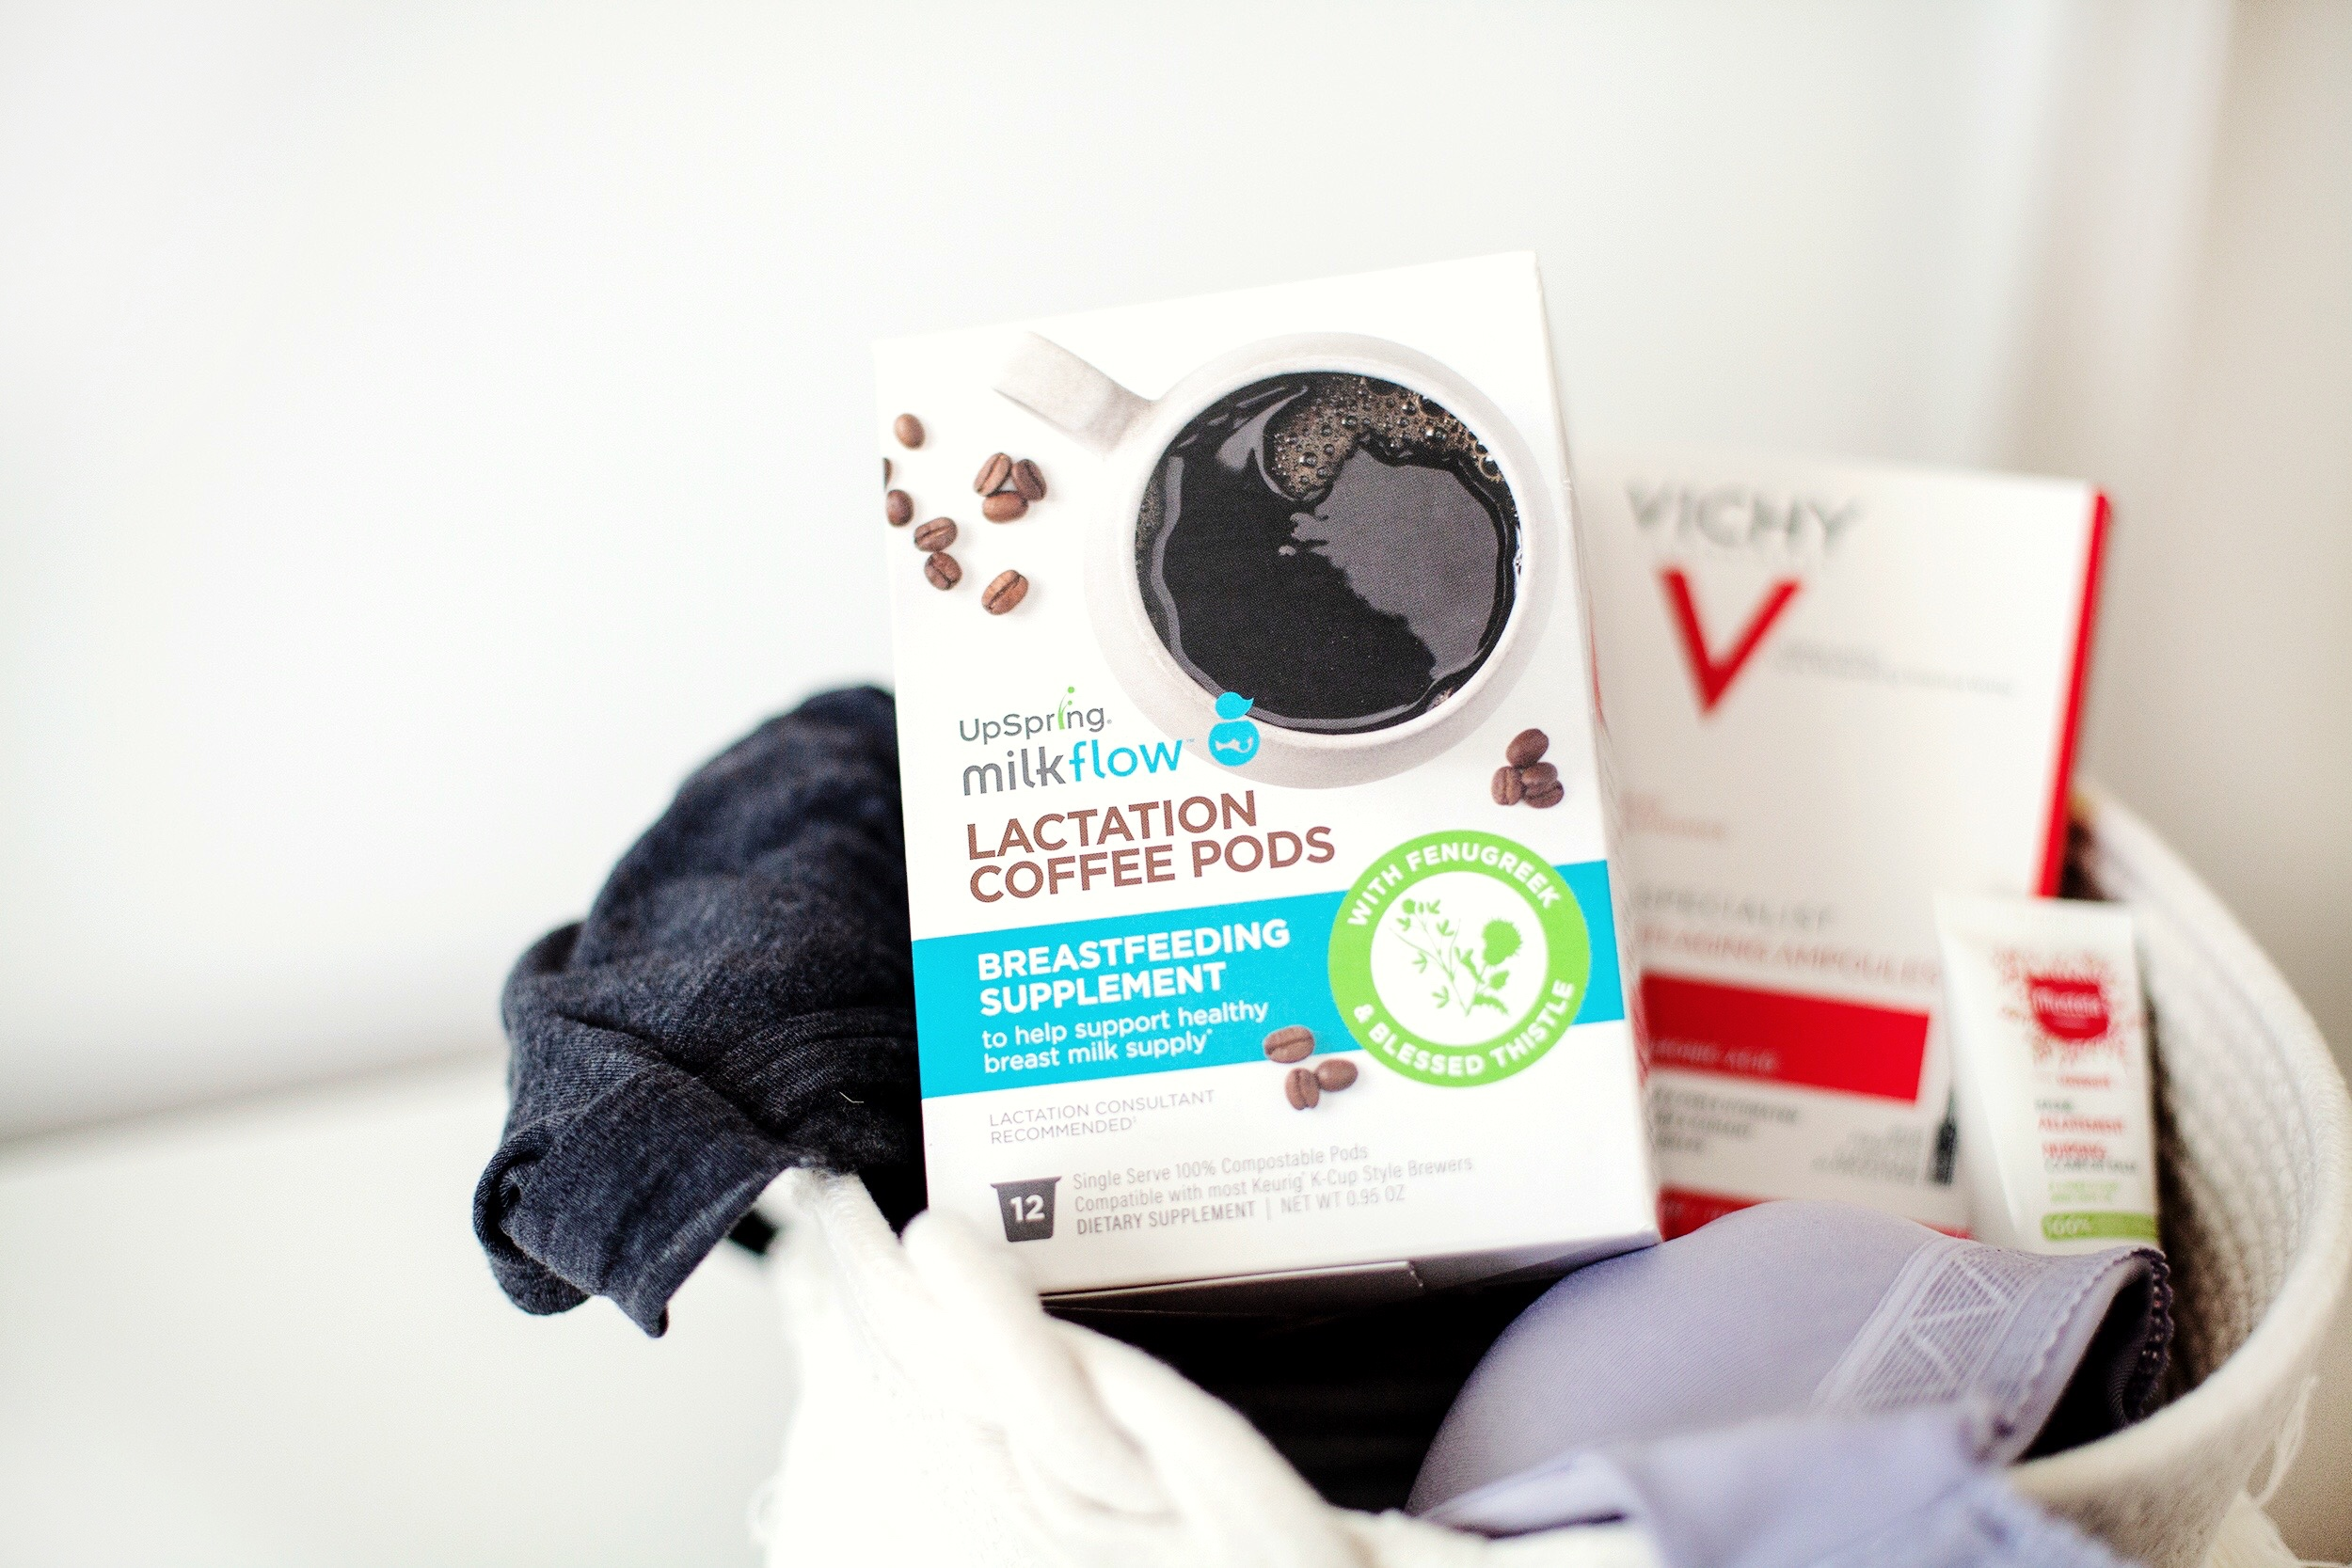 Milkflow Lactation Coffee Pods from UpSpring